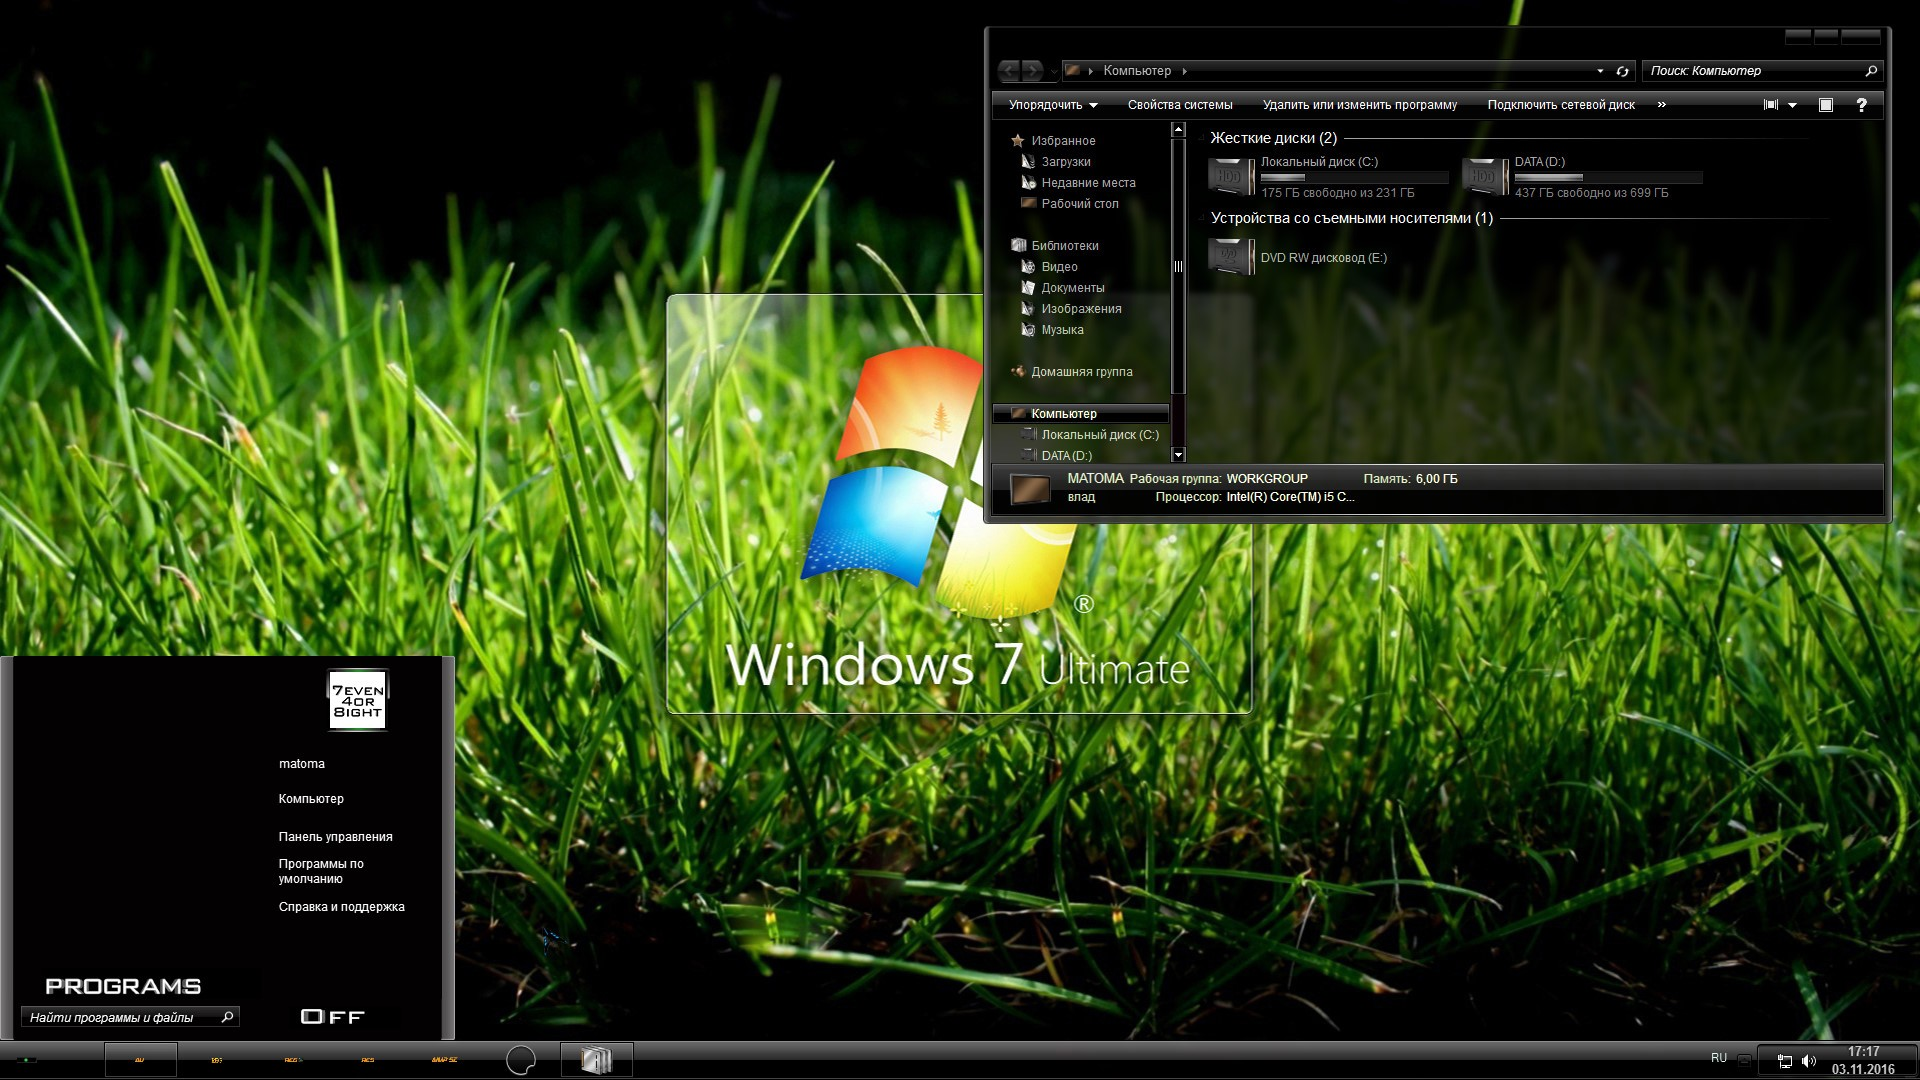 W7 Theme 7even 4our 8ight V.2 by Tiger